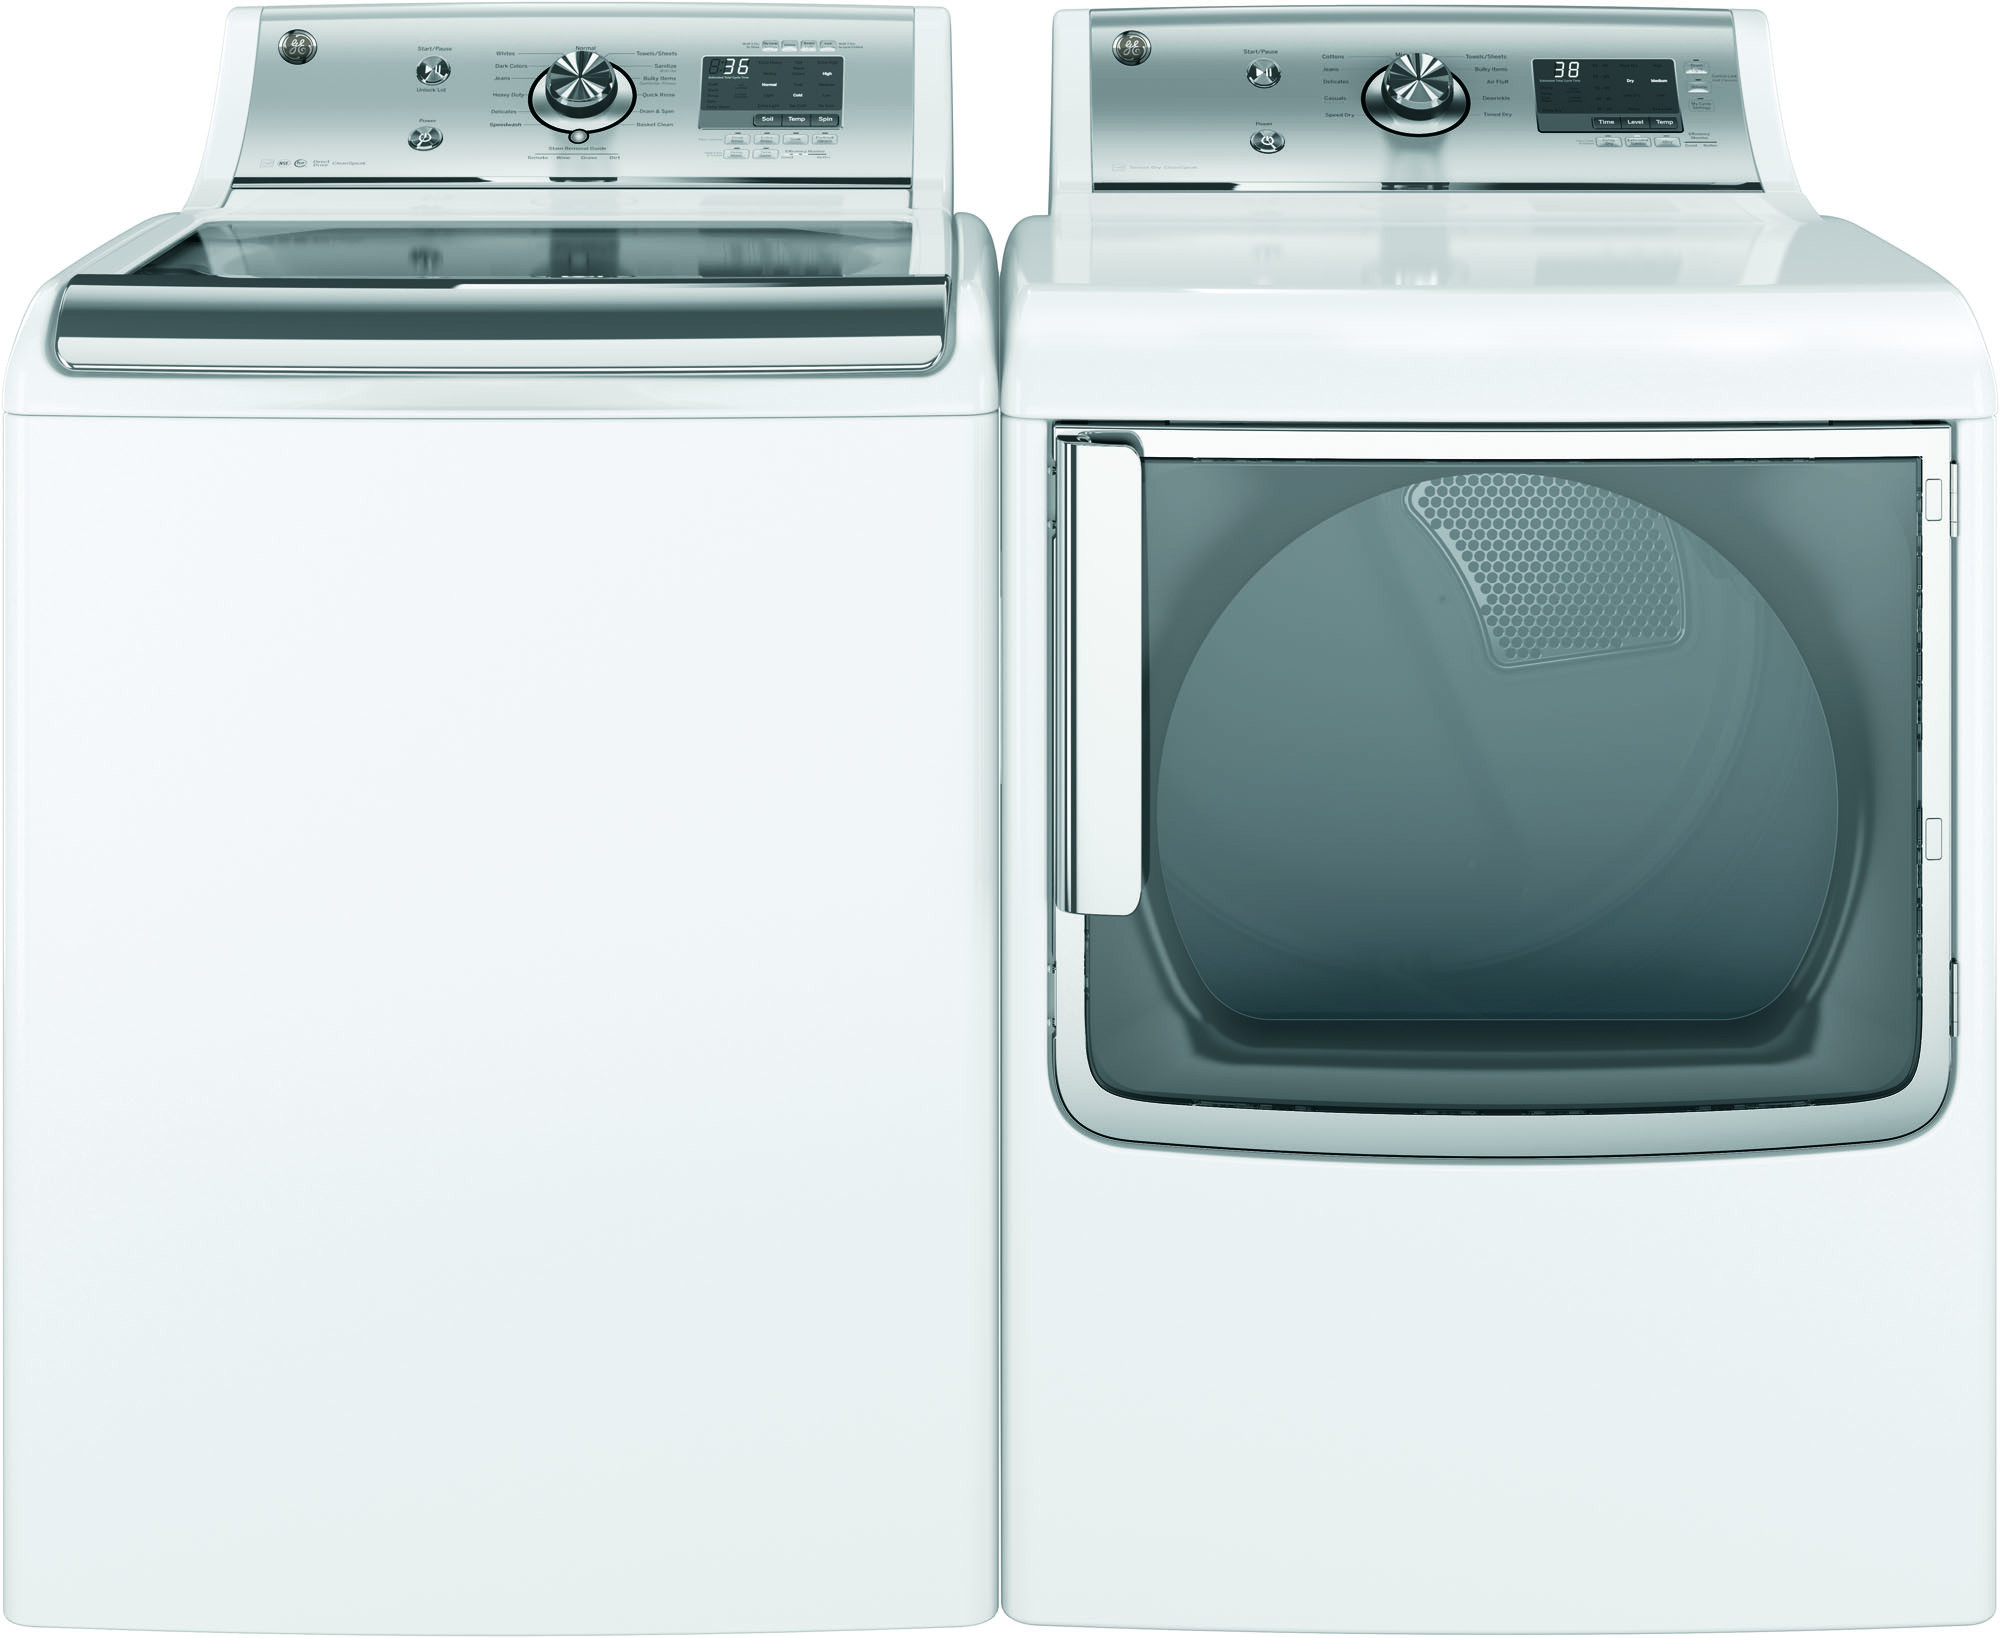 GE Appliances GTW810SSJWS 5.1 cu. ft. Top-Load Washer w/ Stainless Steel Basket - White